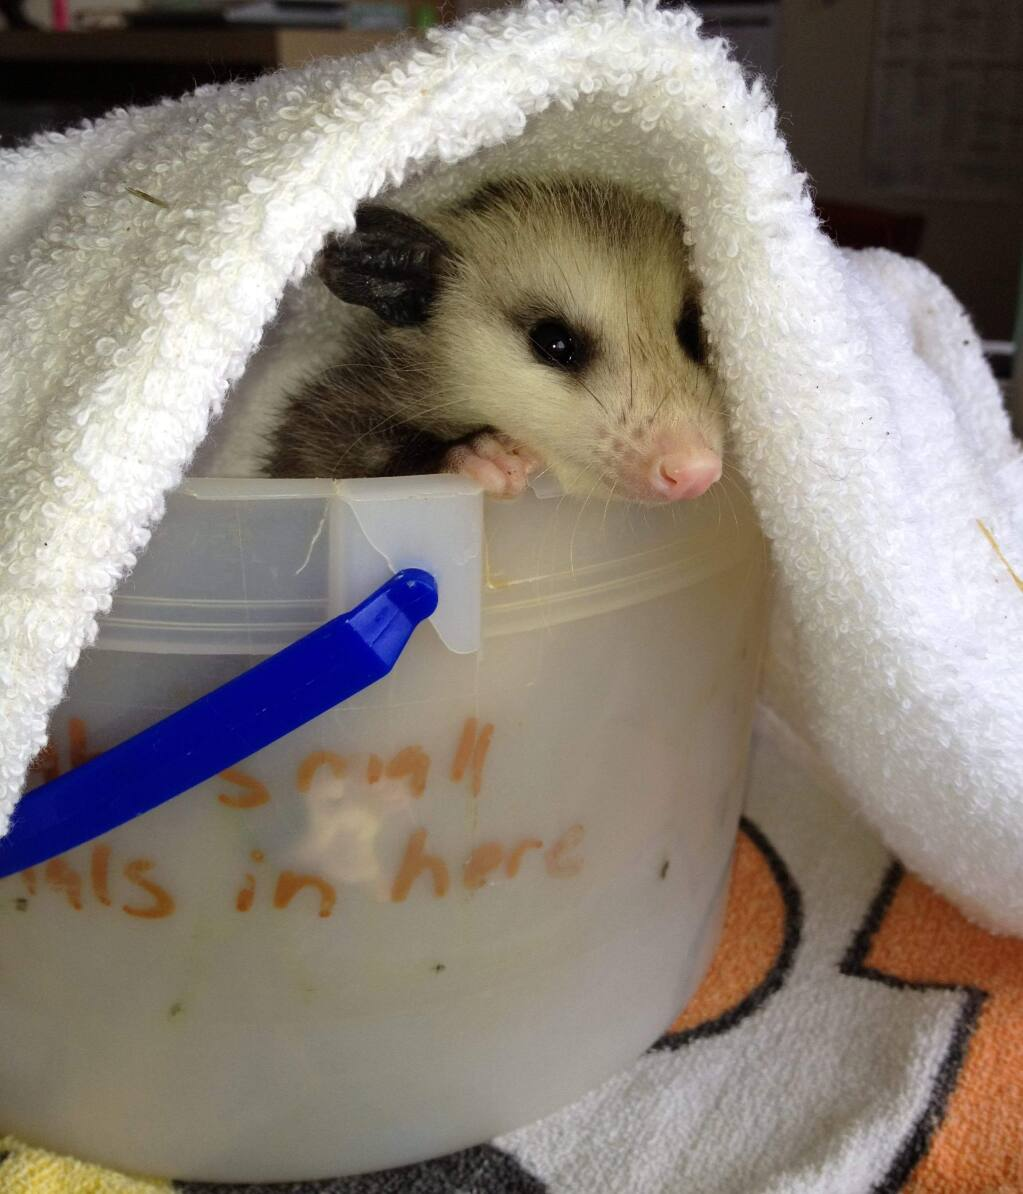 Photos by Sonoma County Wildlife rescueAnimals will often seek out warm and dry areas to have their babies. Raccoons prefer attics, while skunks prefer lower areas, such as crawl spaces.